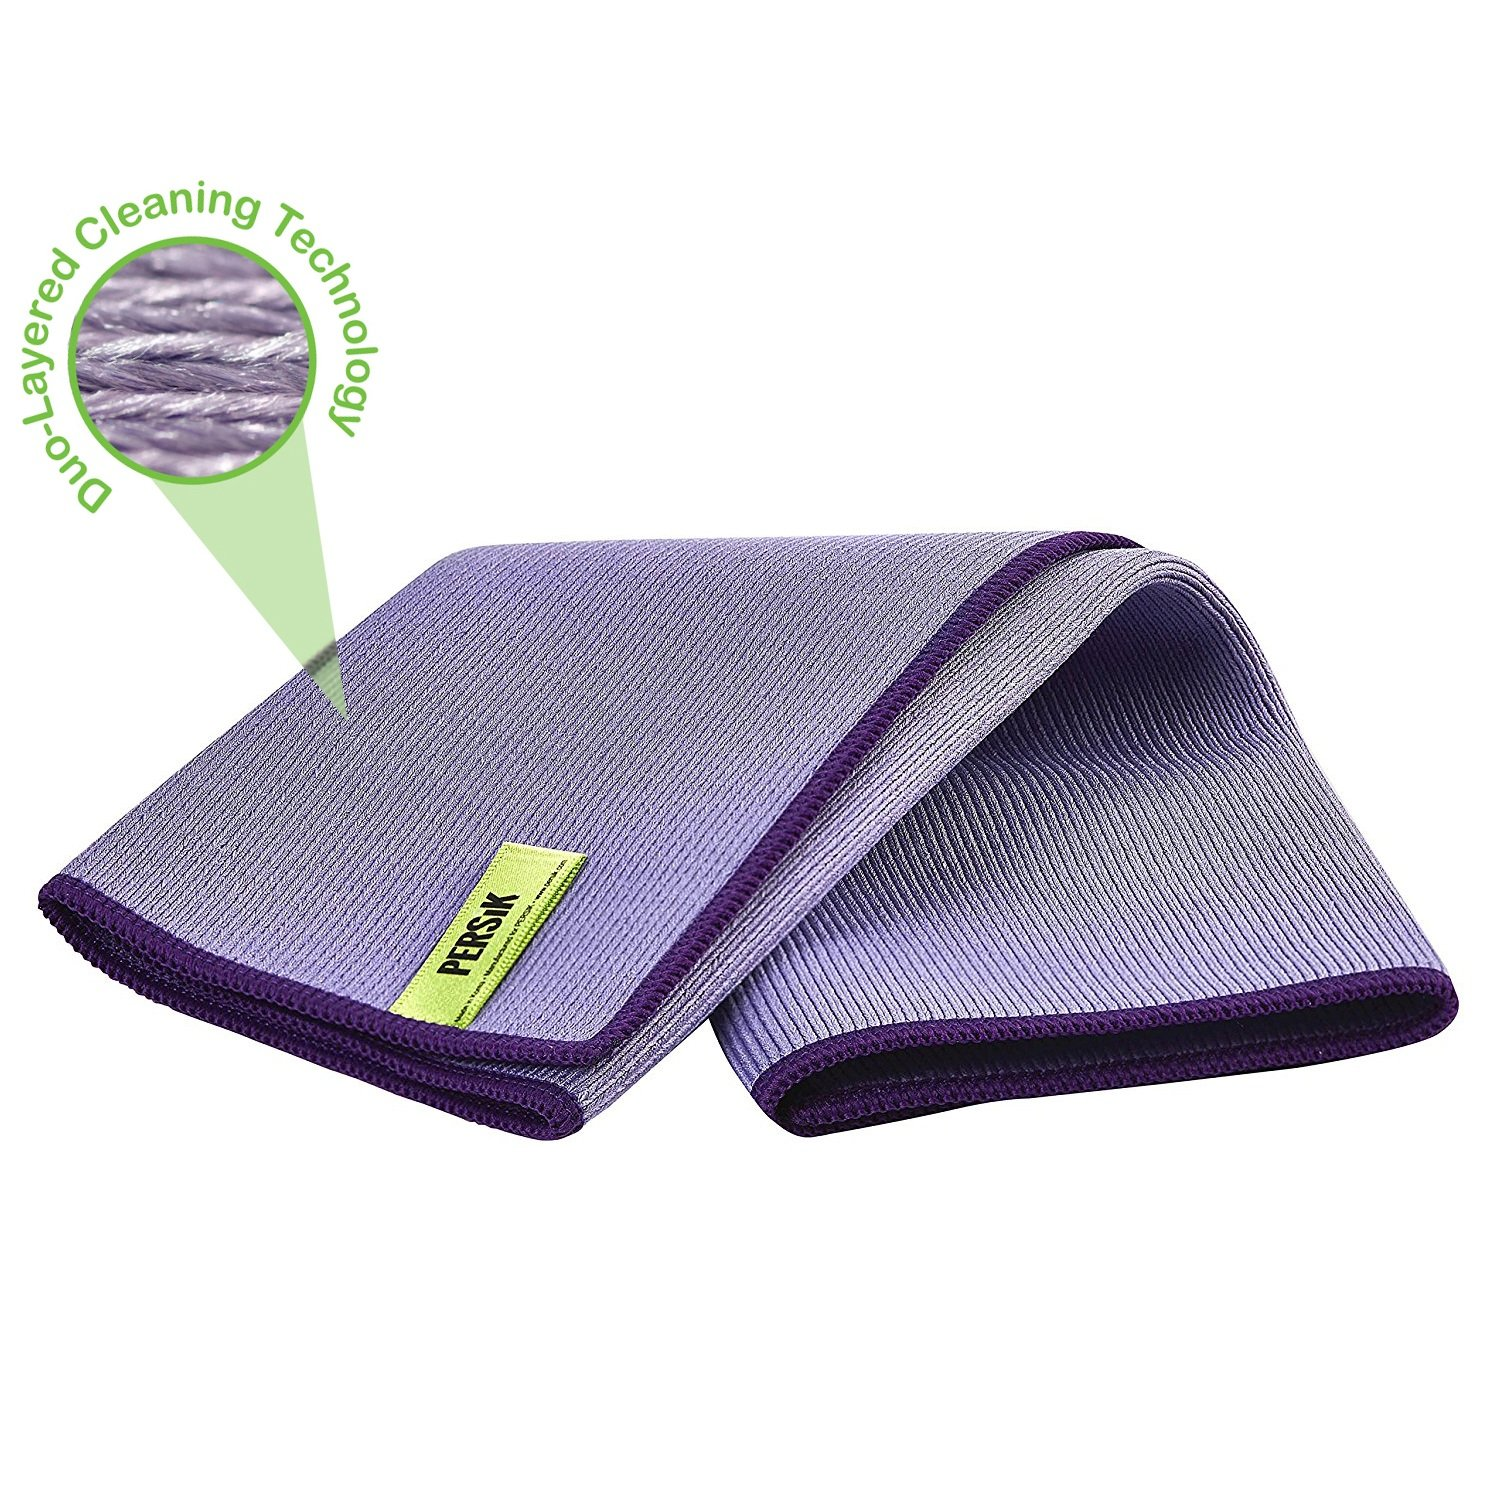 Microfiber Cloth Examples: Amazon.com: June's Miracle Cloth-2 Pack, Micro Fiber Glass